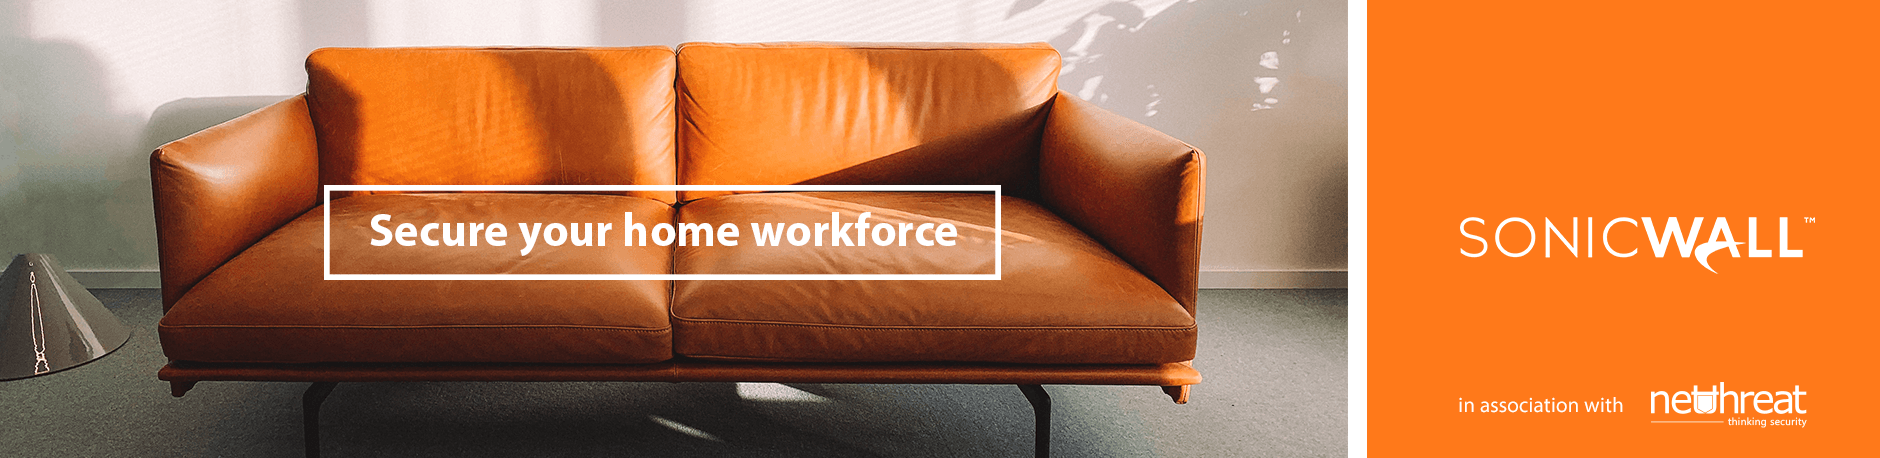 Securing your home workforce